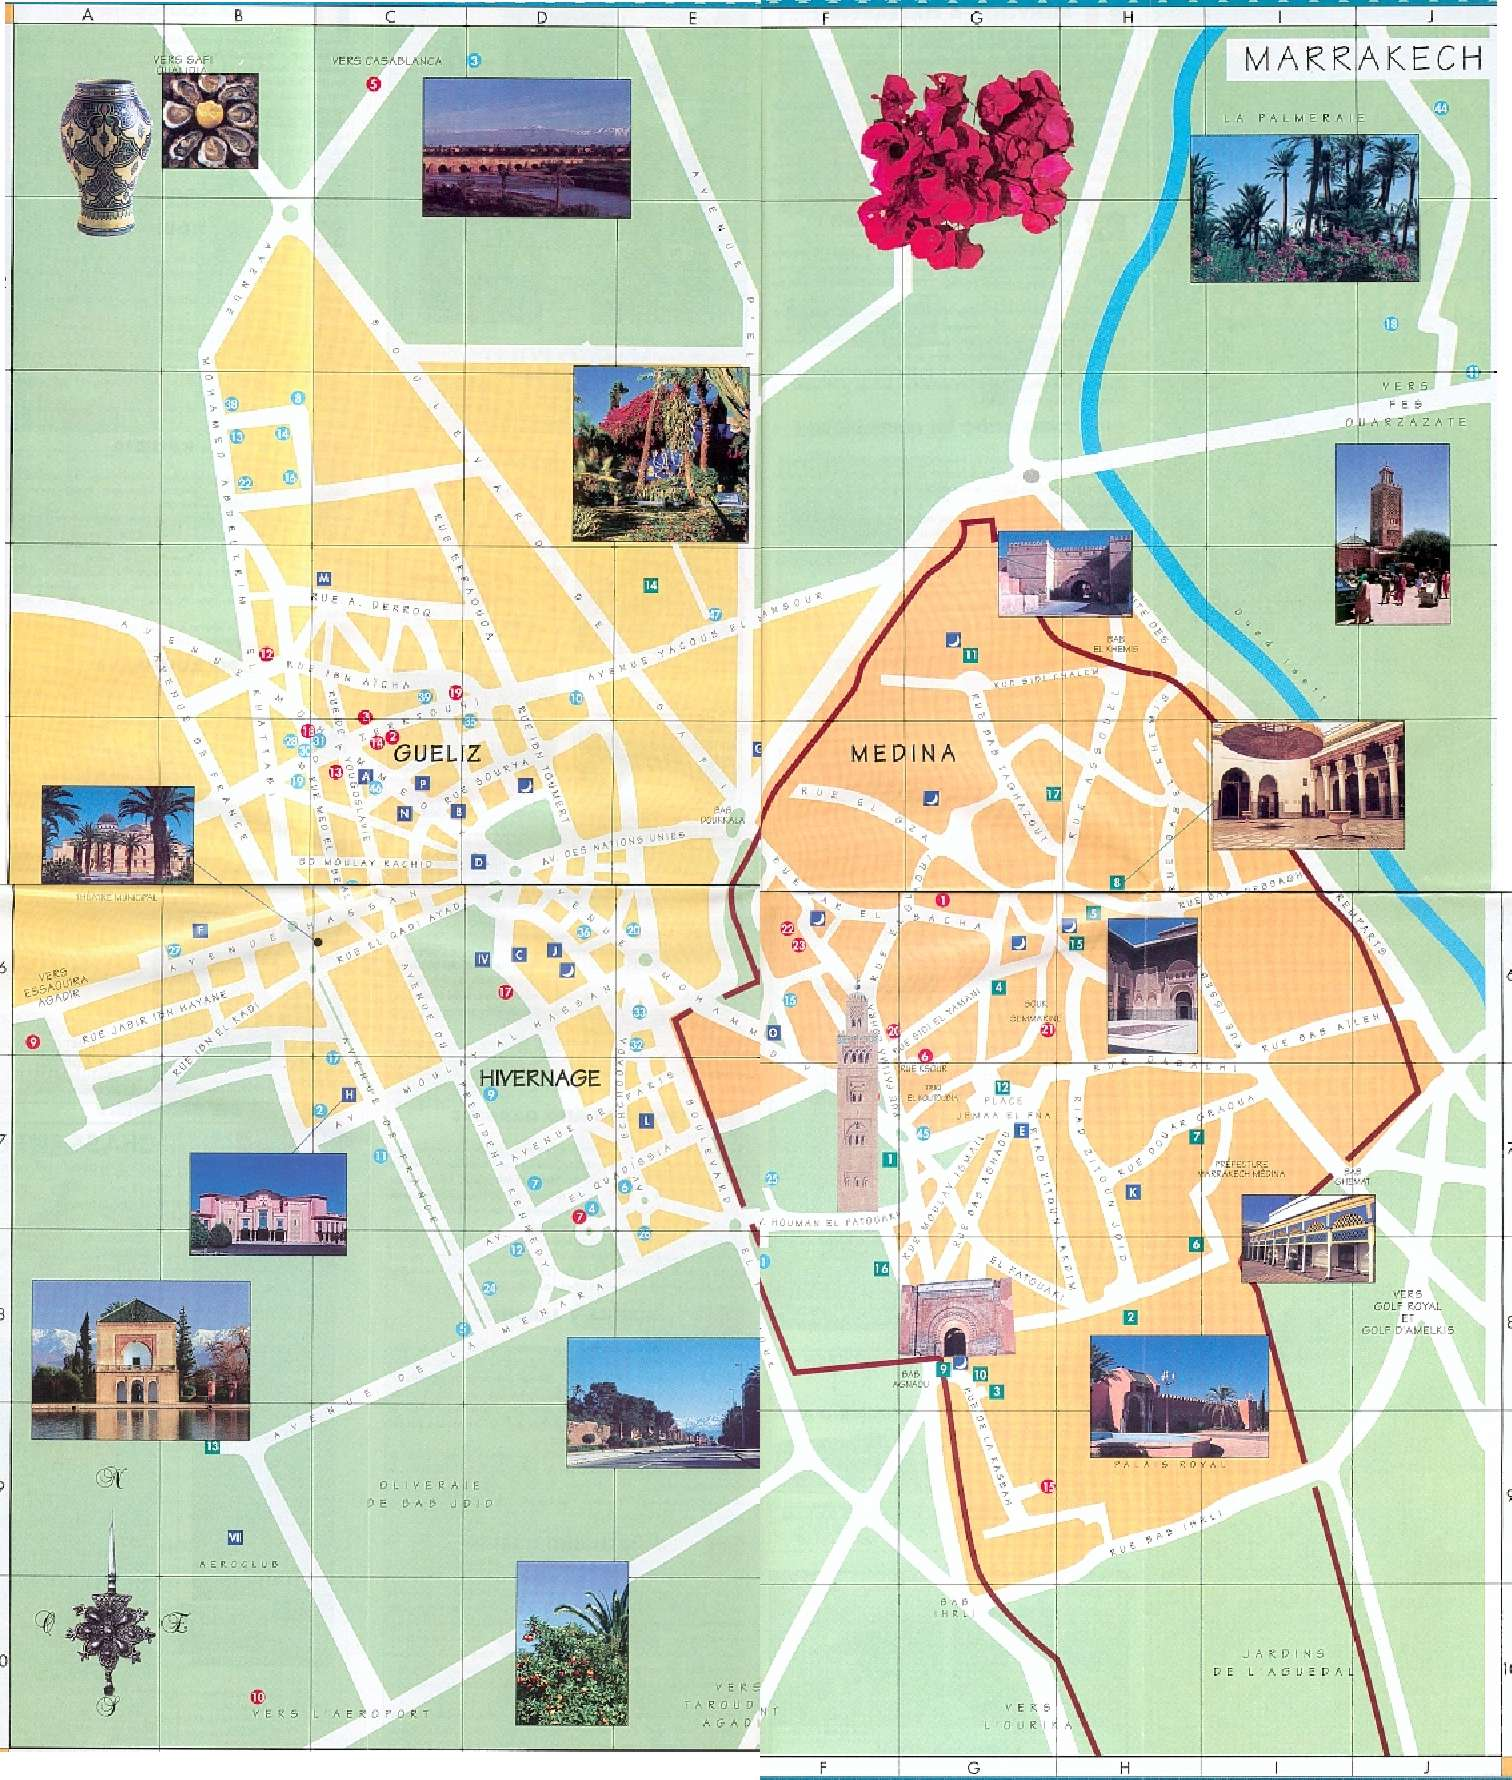 Morocco Map – Morocco Tourist Attractions Map